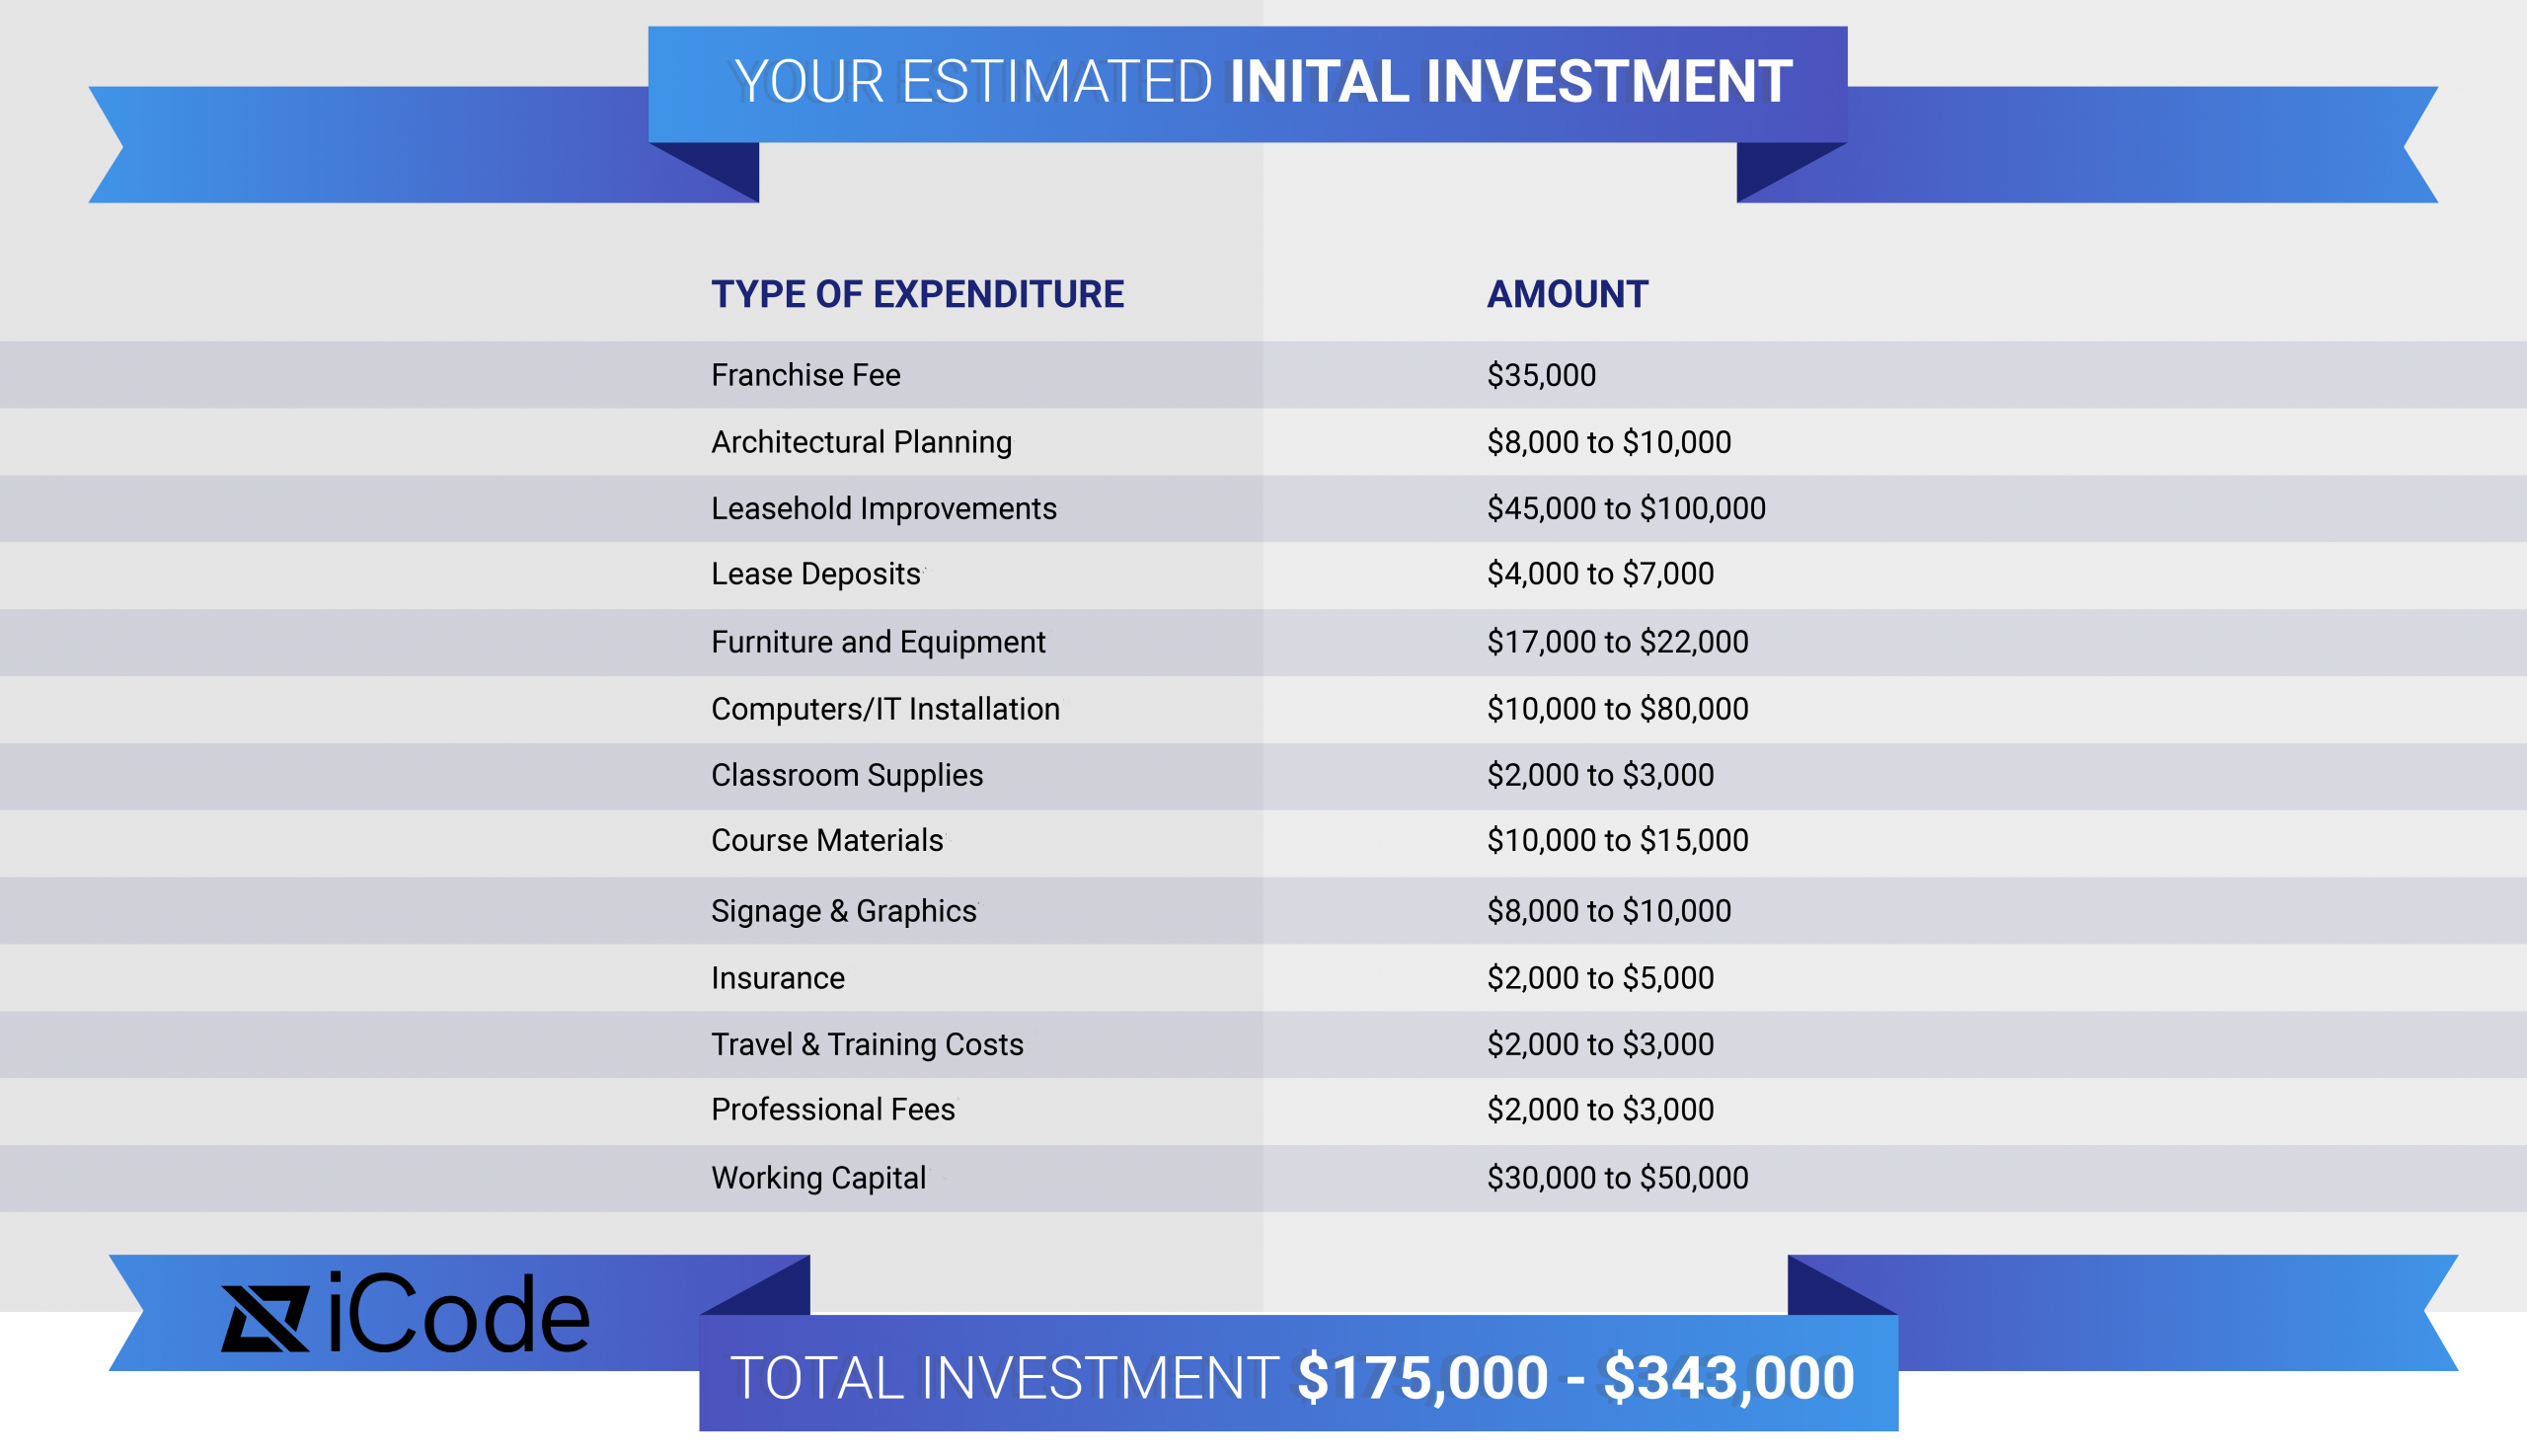 Icode-investment-infographic